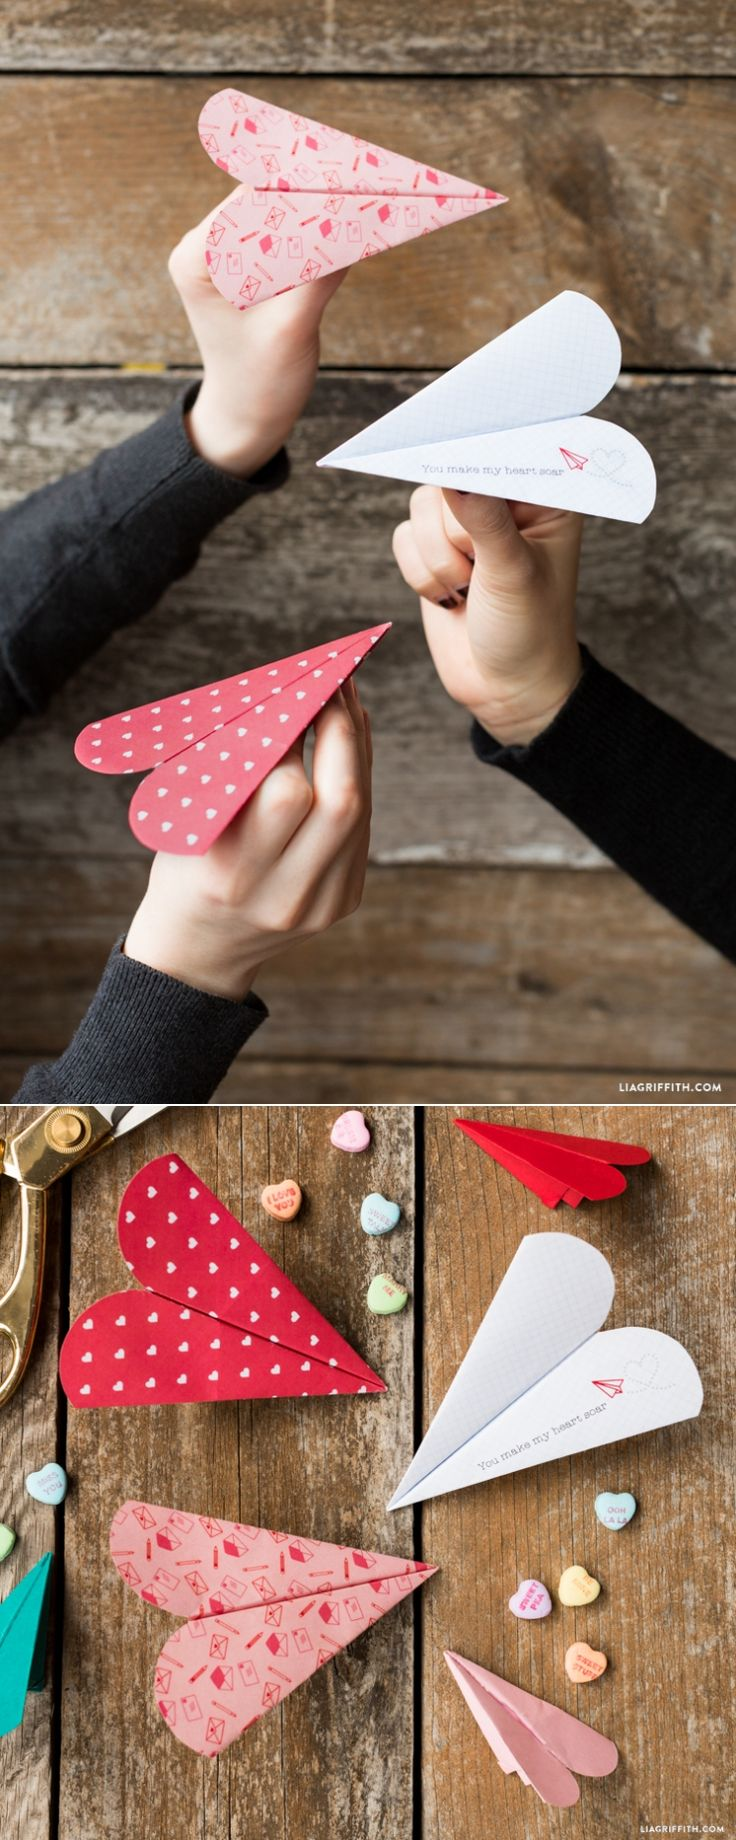 #heartpaper #papercraft #paperairplane www.LiaGriffith.com: